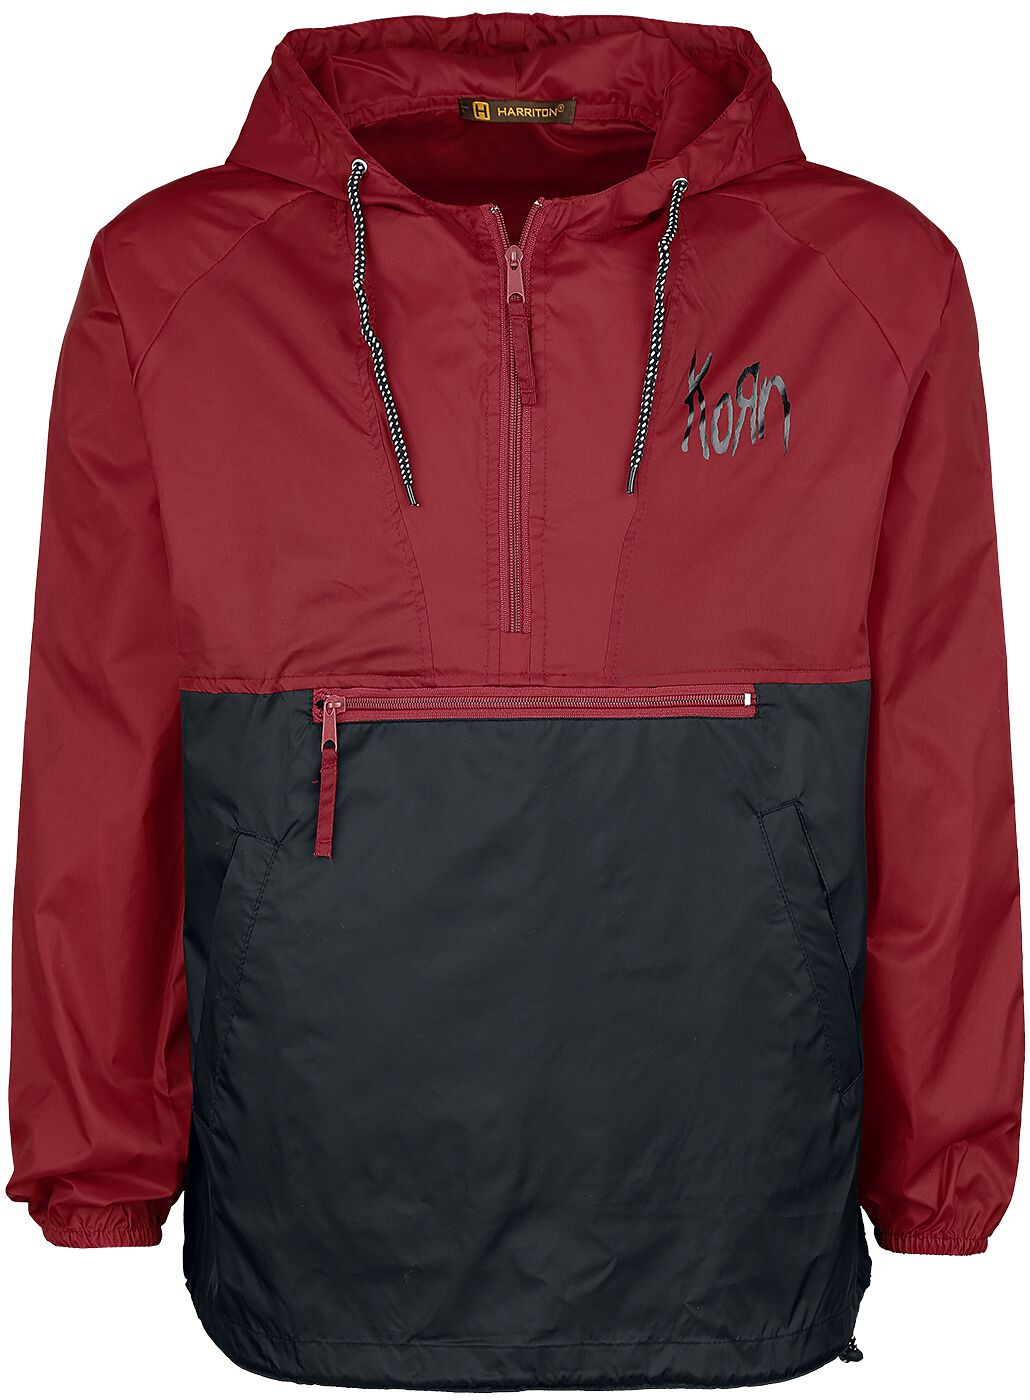 Image of   Korn Windbreaker Windbreaker sort